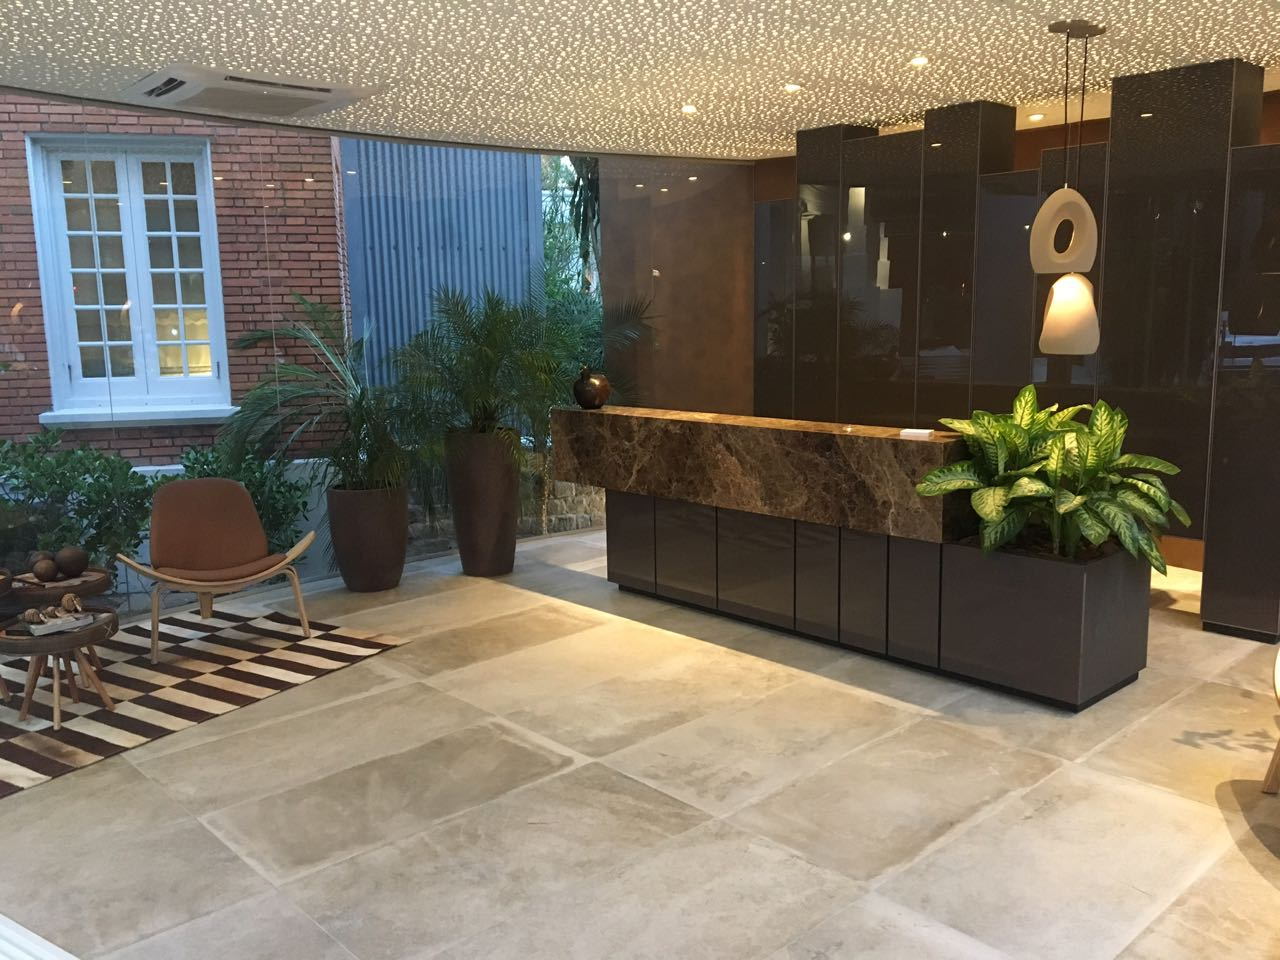 Foyer of business with large undertile heating area completed